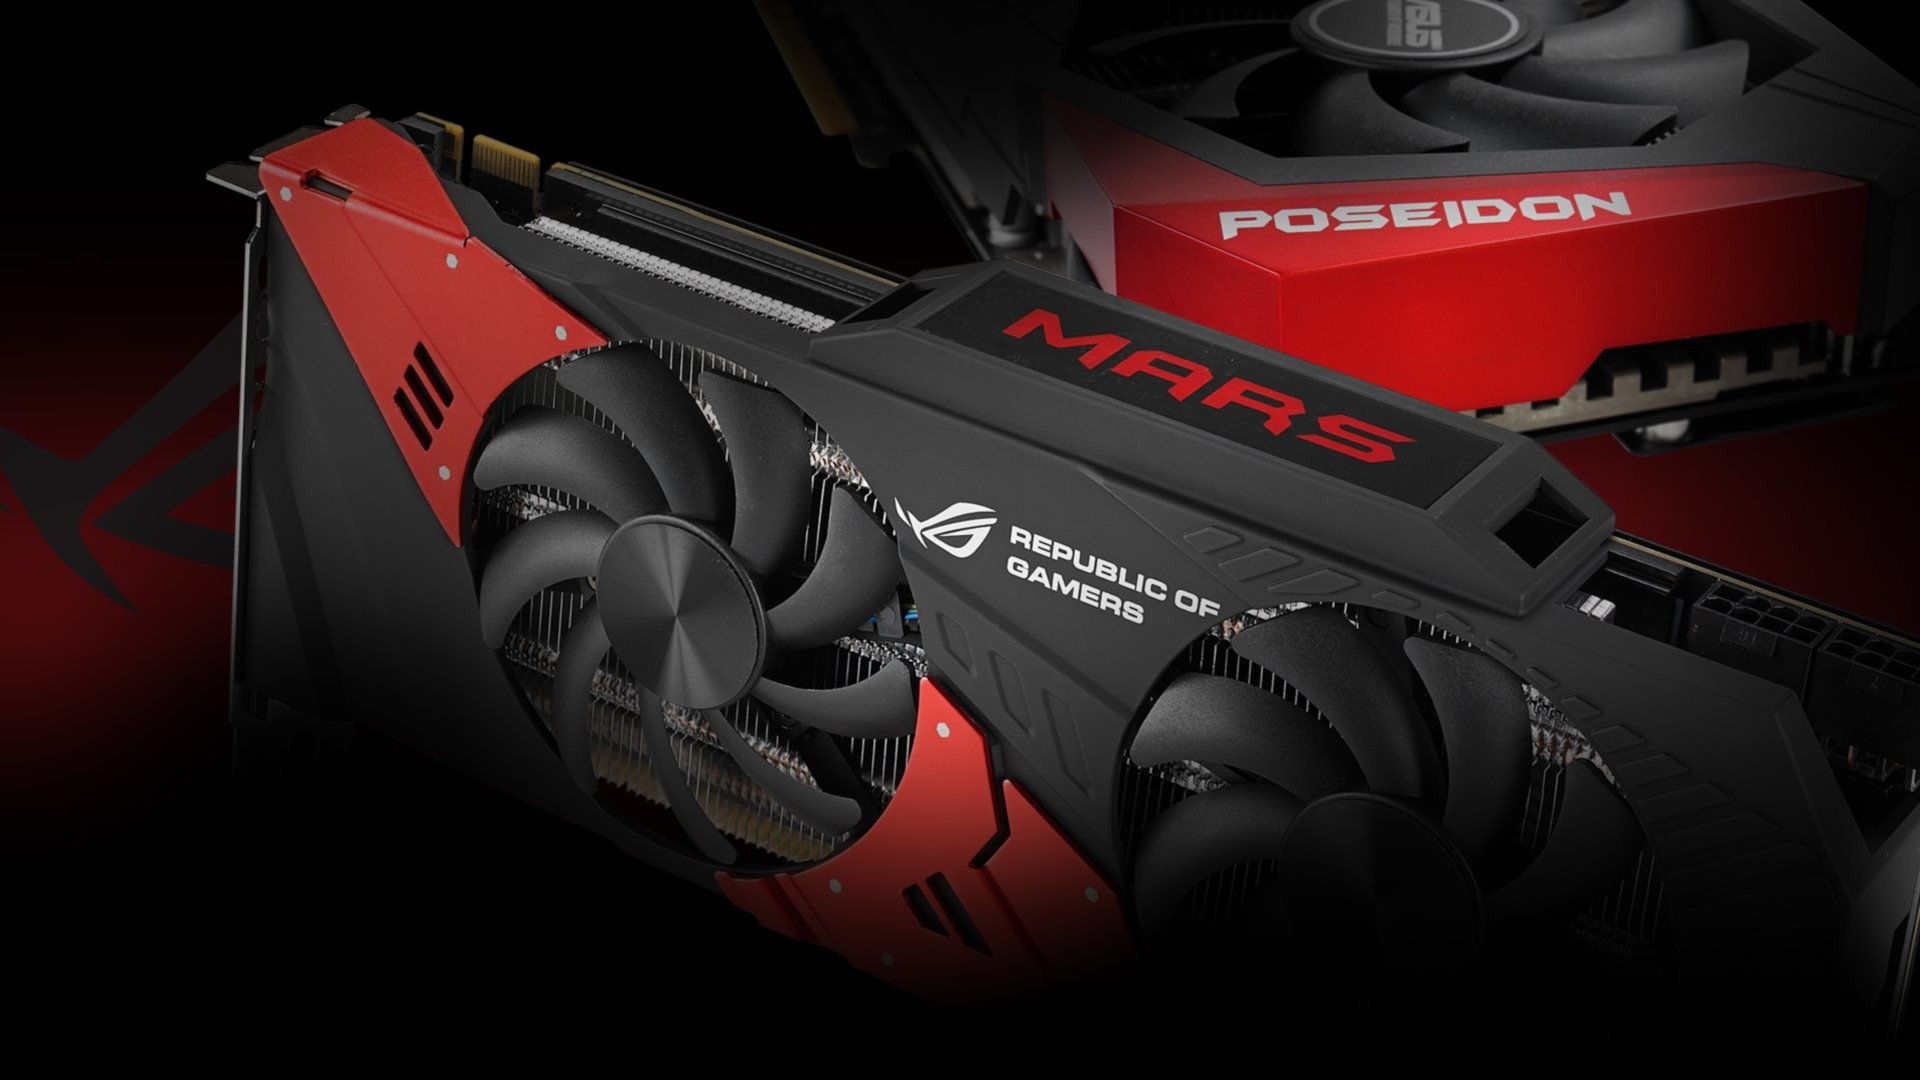 1920x1080 Wallpaper: Asus ROG. High Definition HD